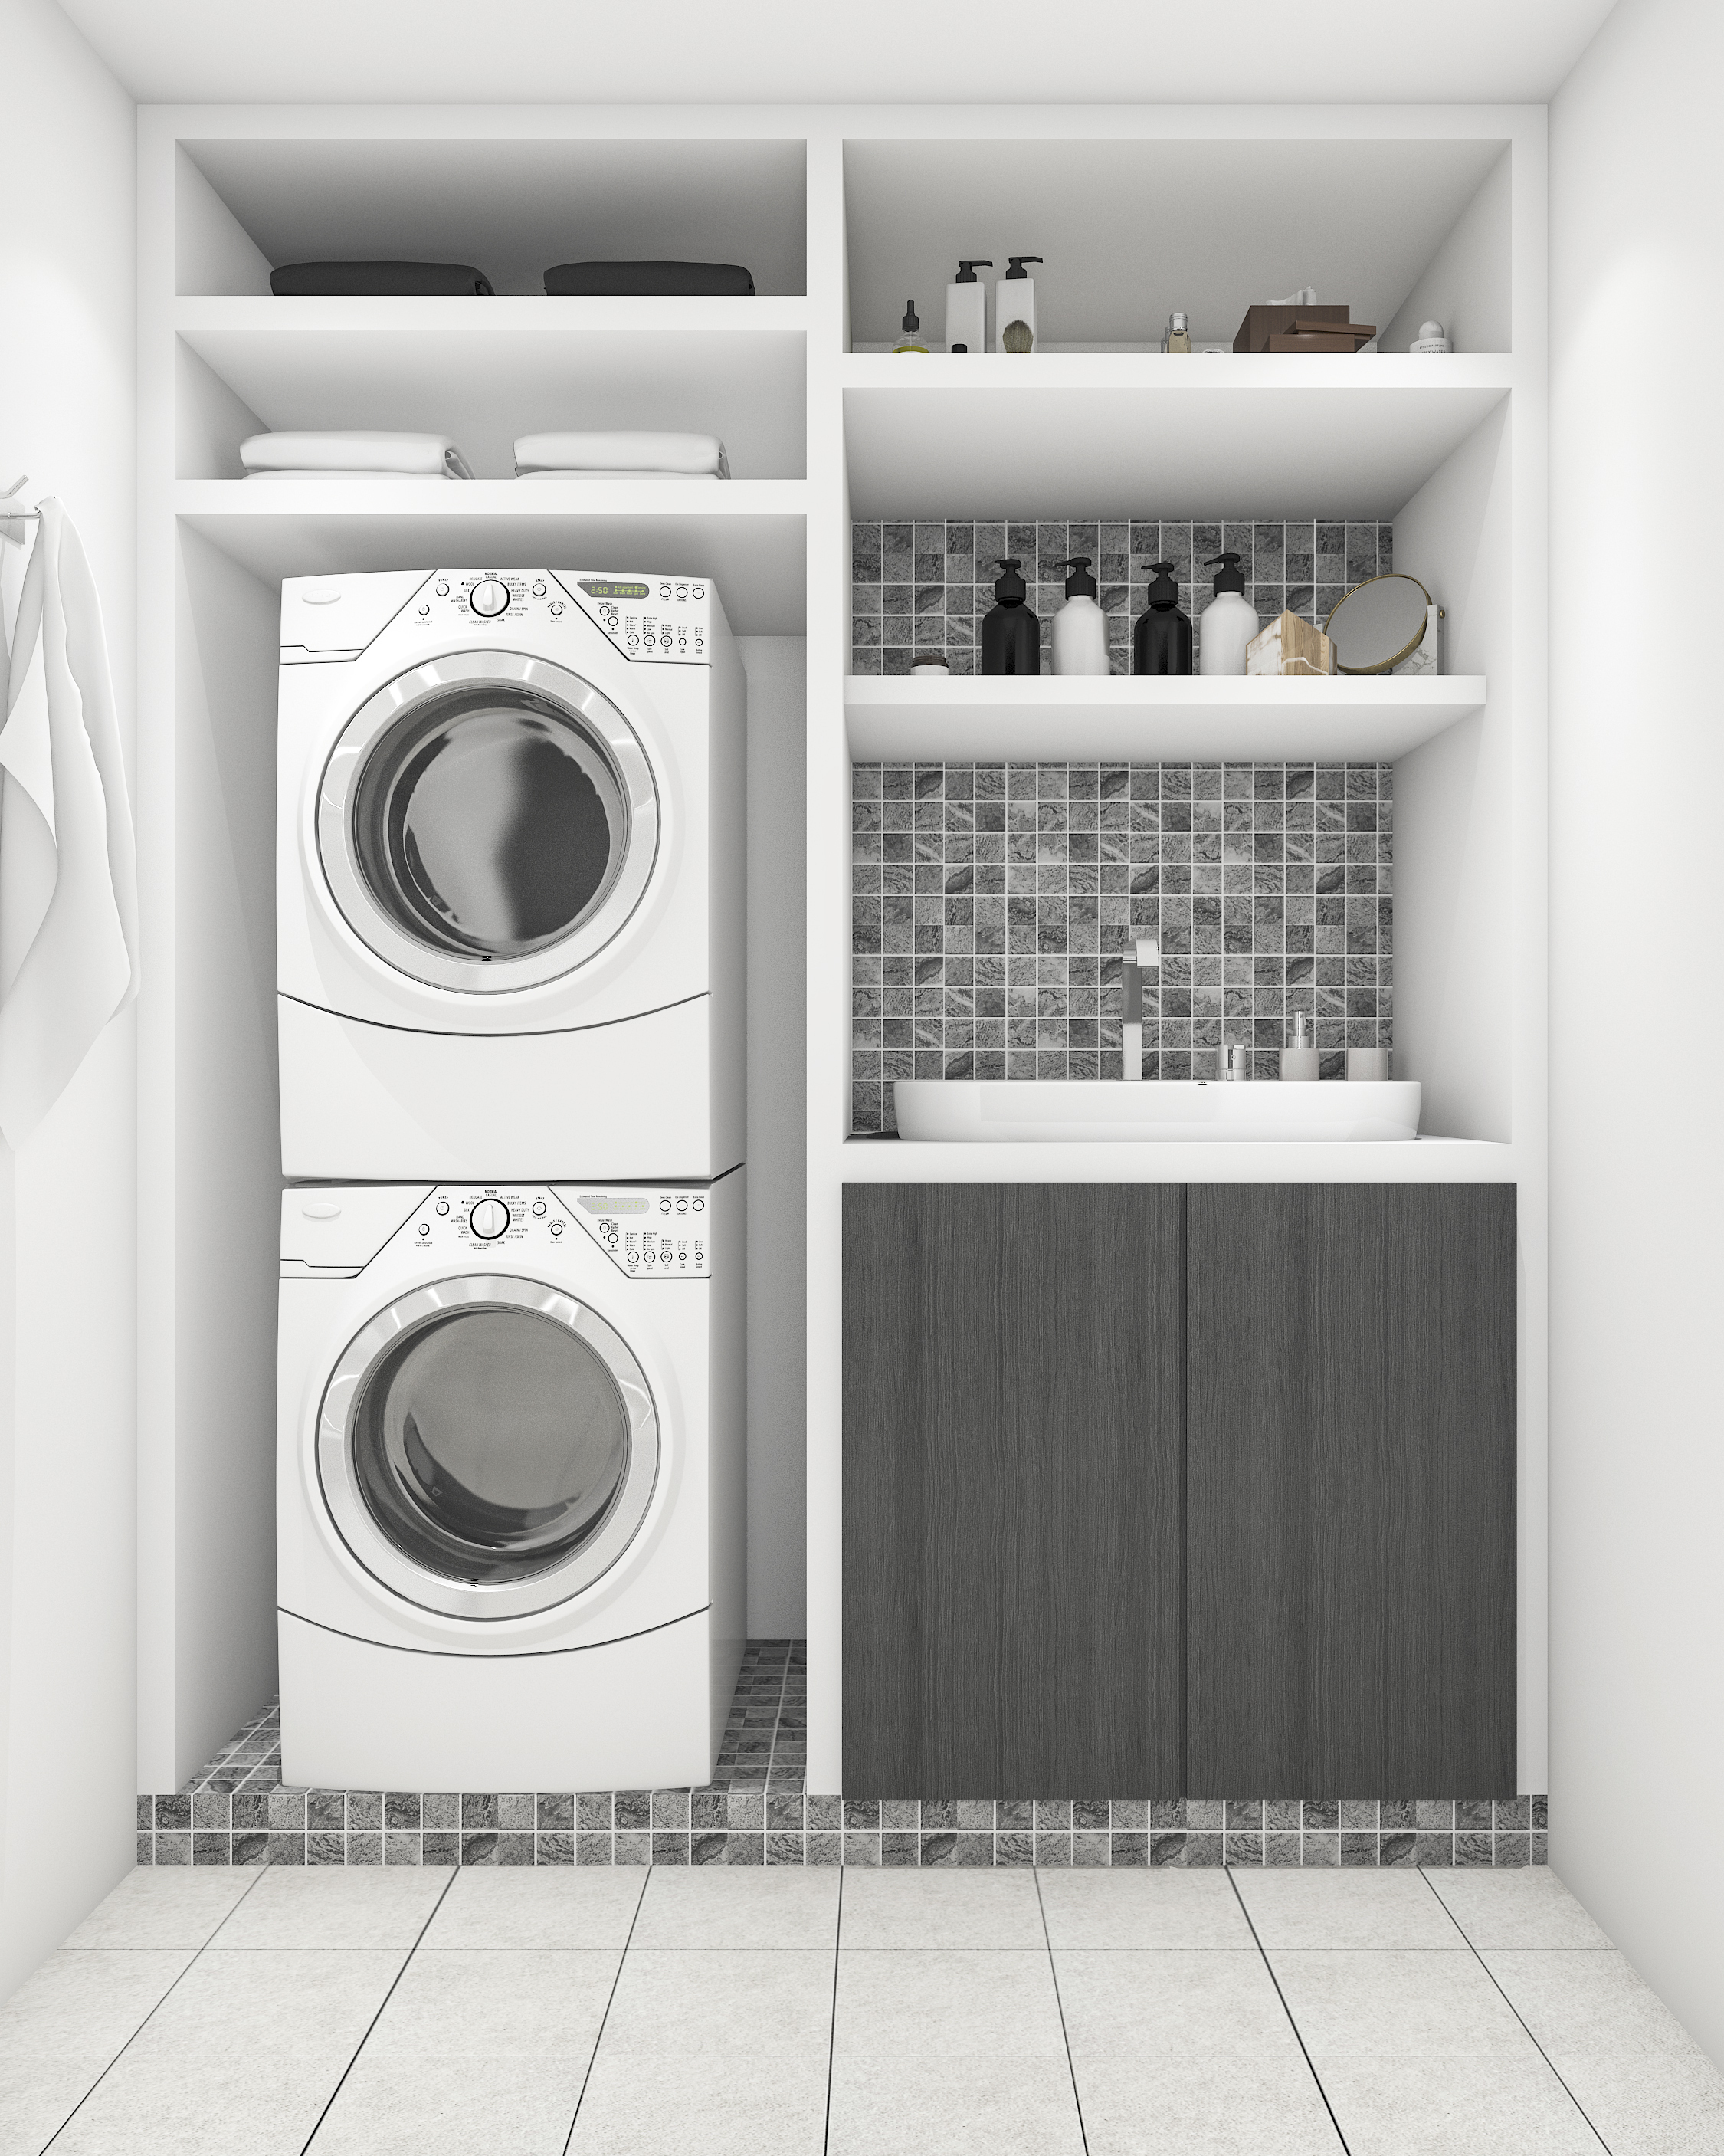 laundry | laundry room | laundry closet | laundry closet ideas | laundry room ideas | home design | design